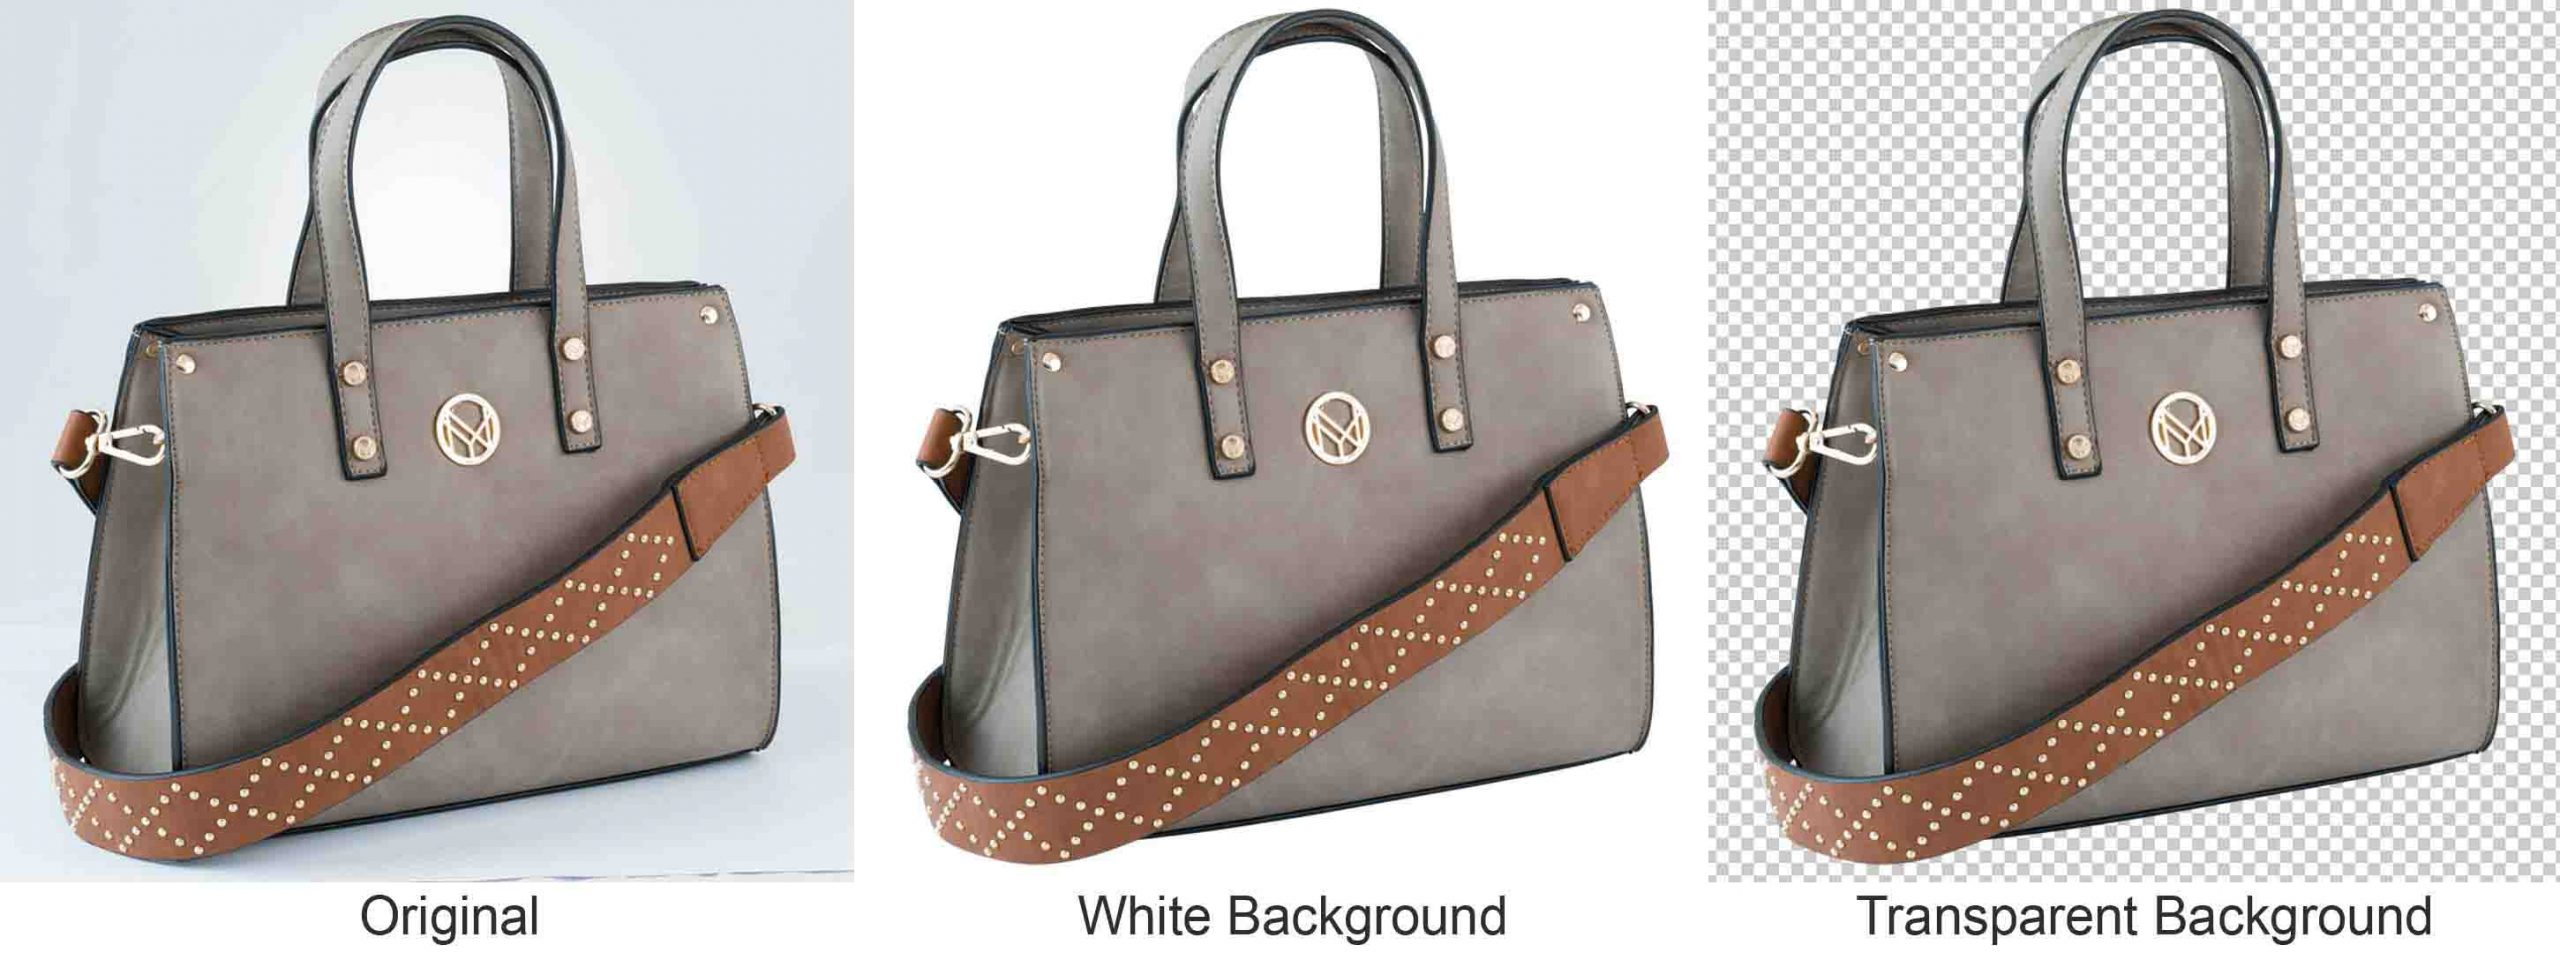 easy background removing by clipping path